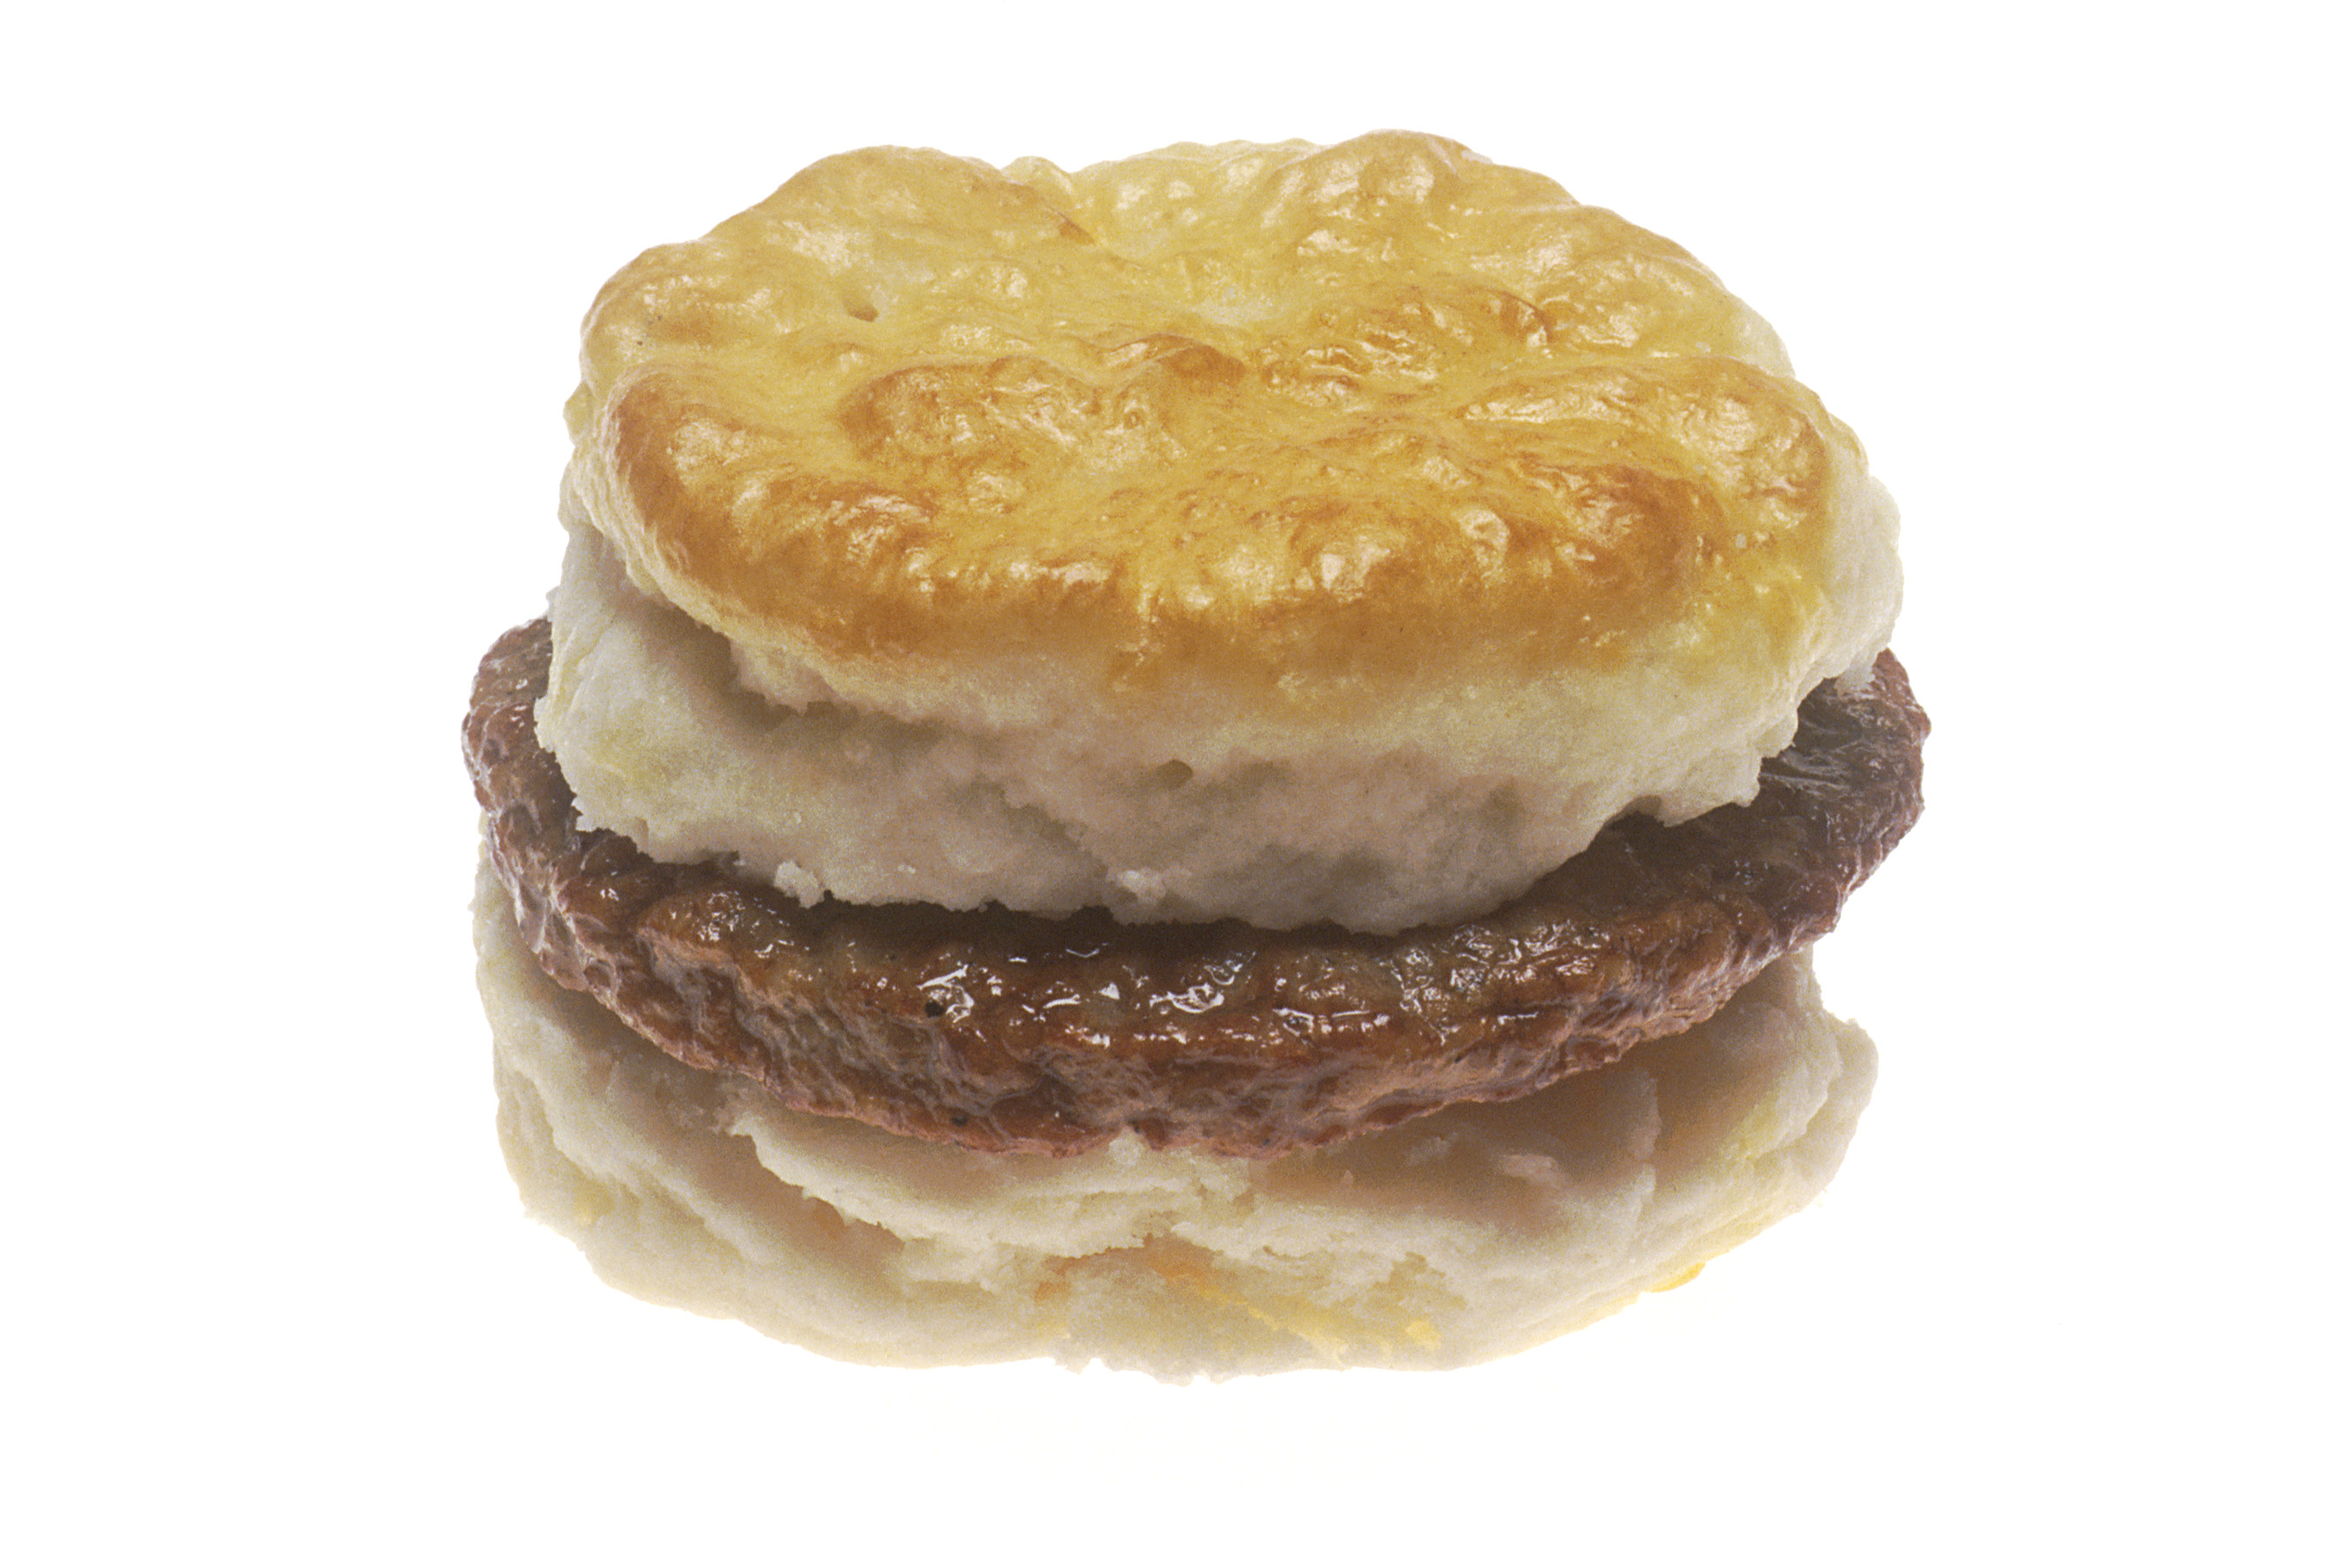 File:Sausage biscuit.jpg - Wikimedia Commons